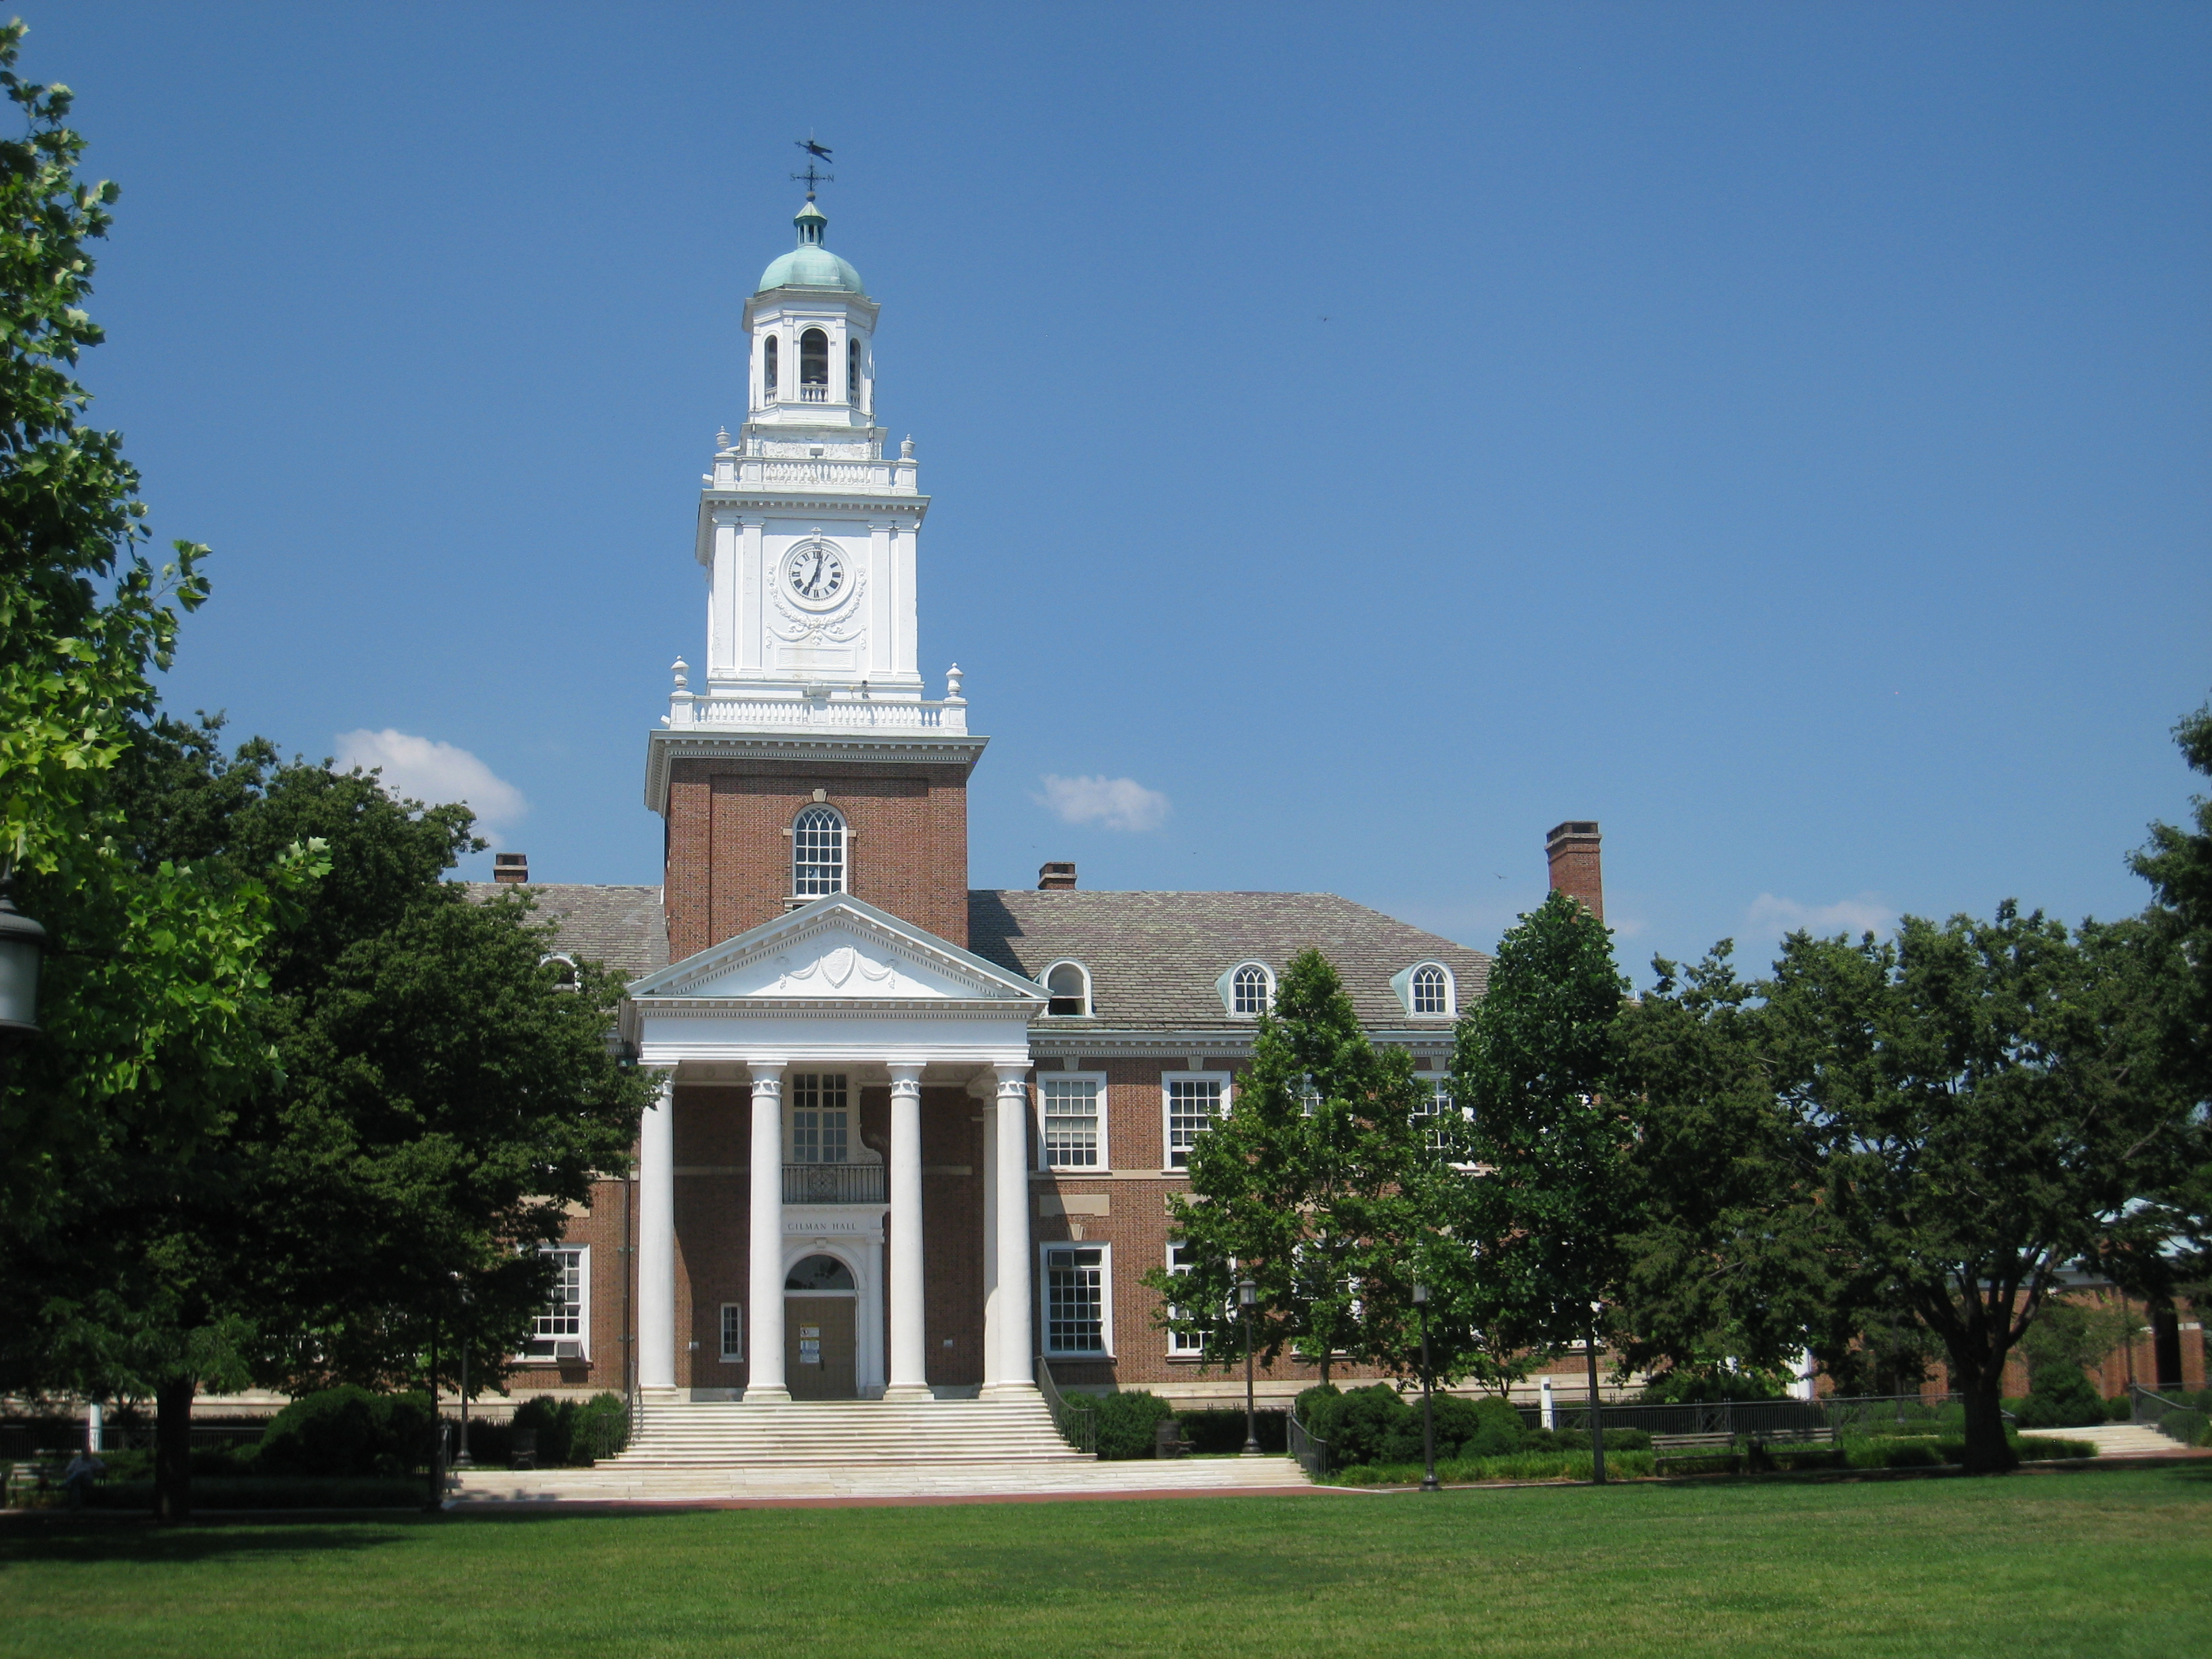 jhu online dating Find out what you need to know about applying to johns hopkins university,  including important dates, application fees, and test requirements.